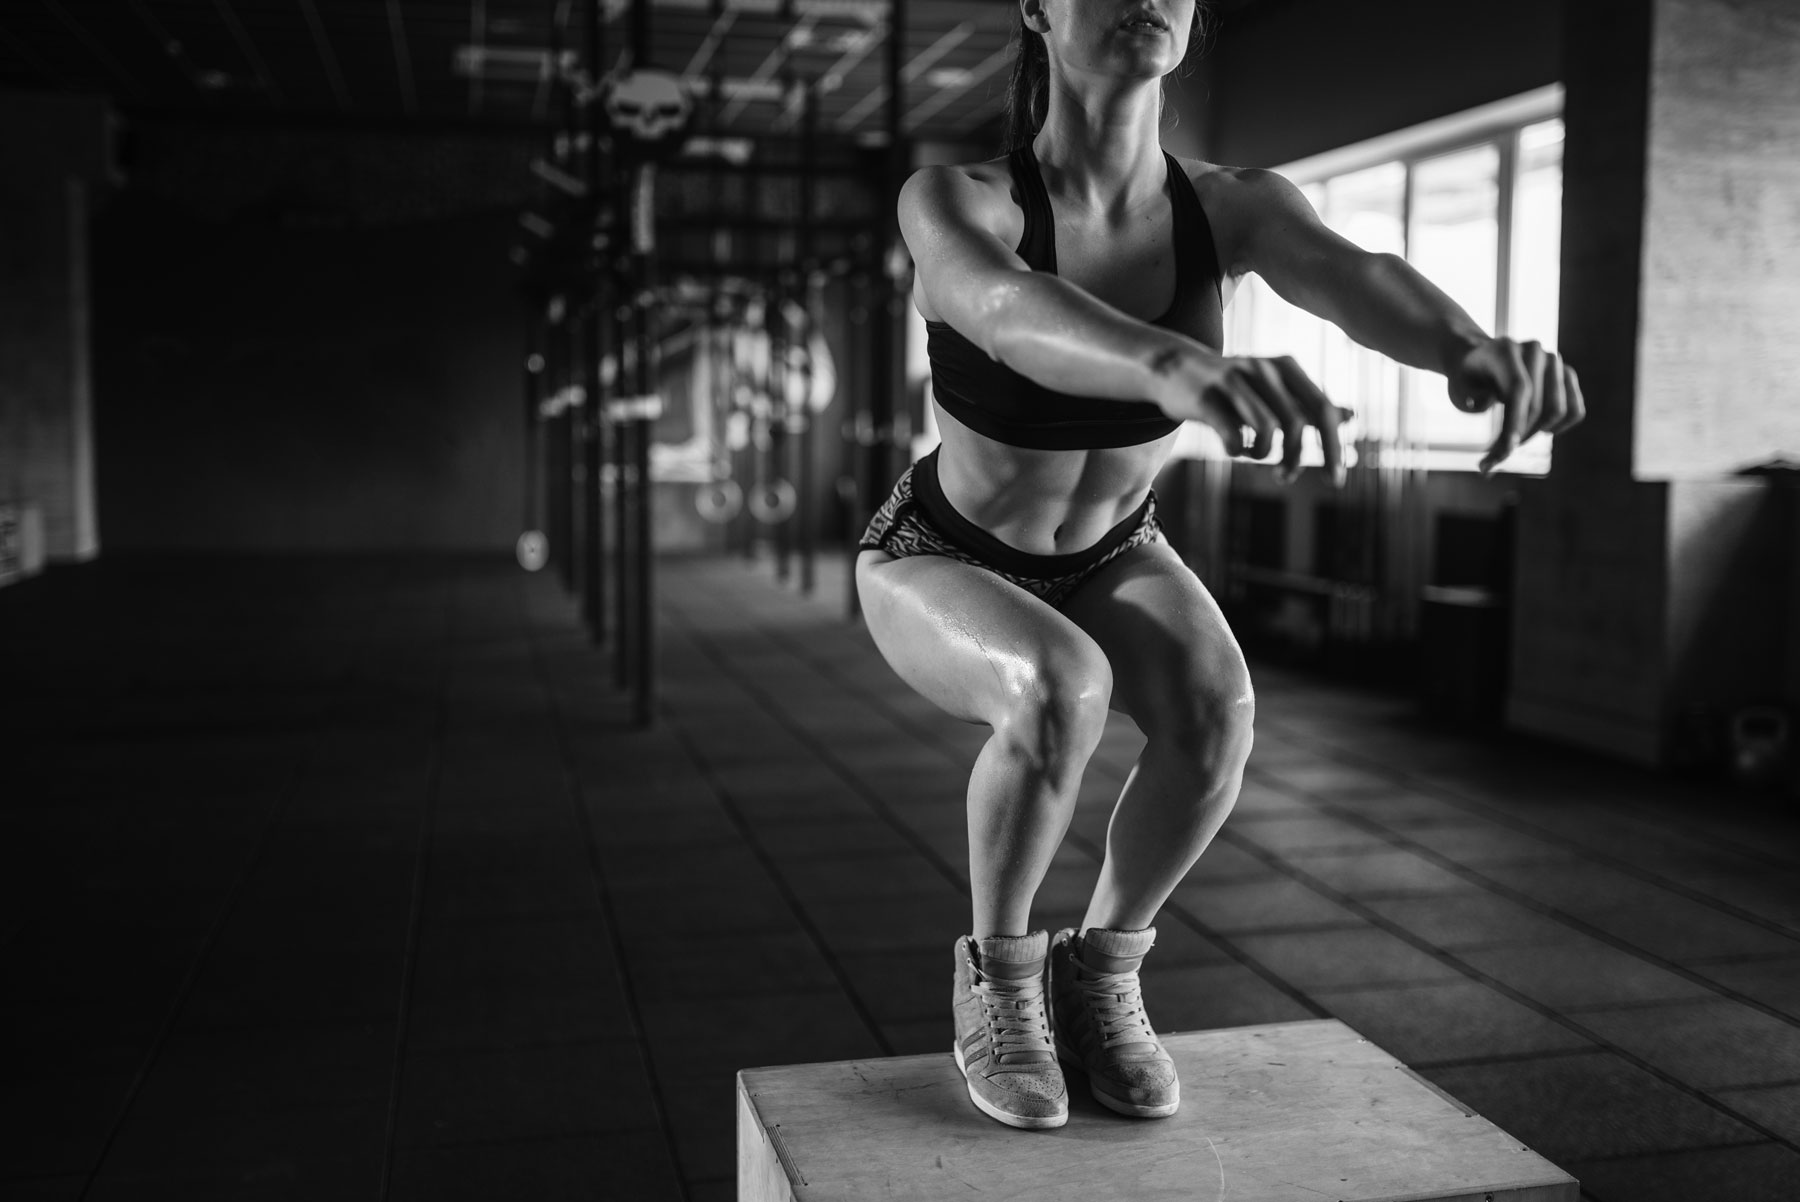 woman-doing-box-jump-exercise-in-fitness-club-PWECQ9X.jpg